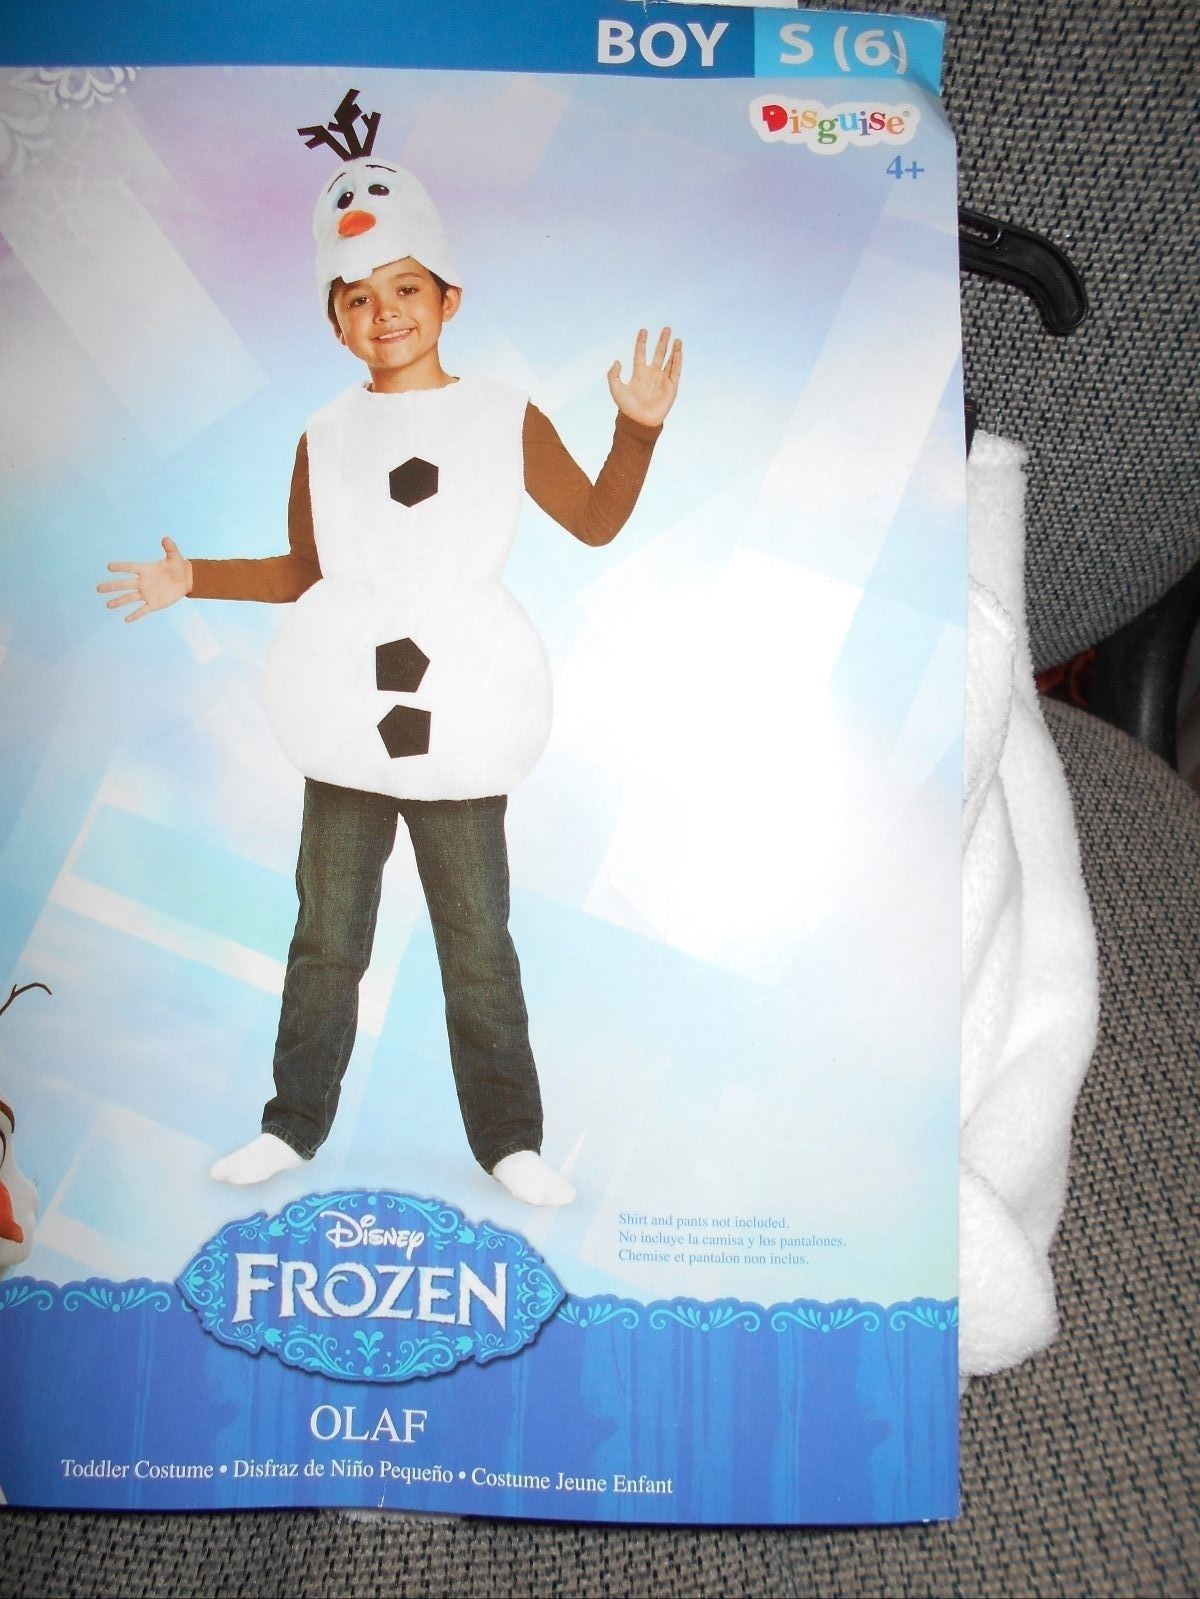 NIP DISGUISE BOYS SZ S 6 FROZEN DISNEY OLAF SNOWMAN COSTUME FUN HALLOWEEN